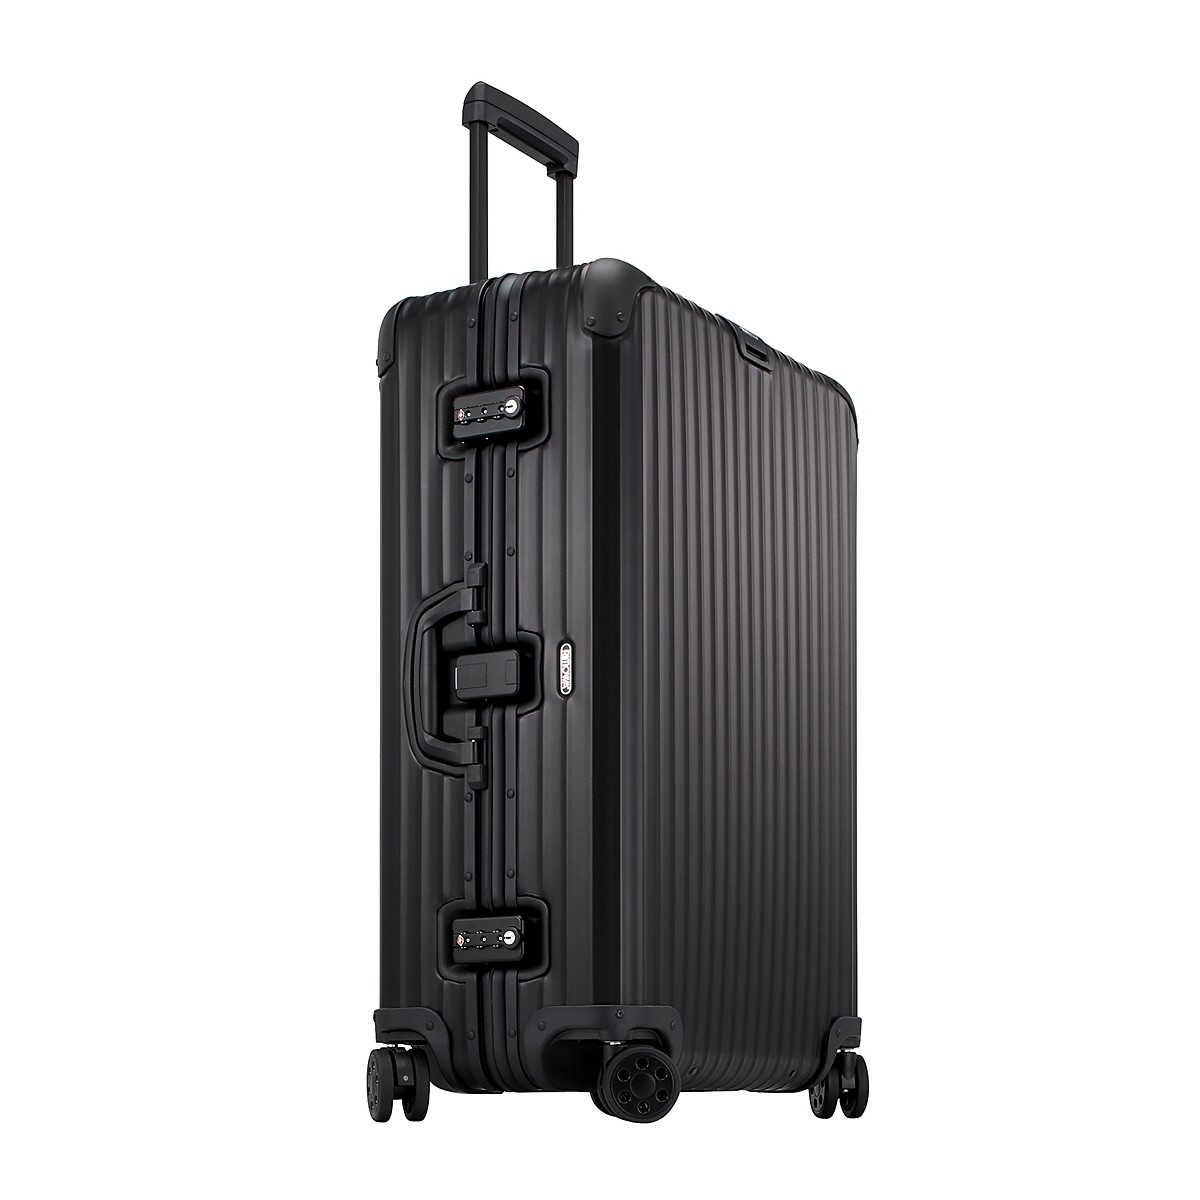 suitcases topas rimowa products men aluminum luggage multiwheel cabin enlarged cabins